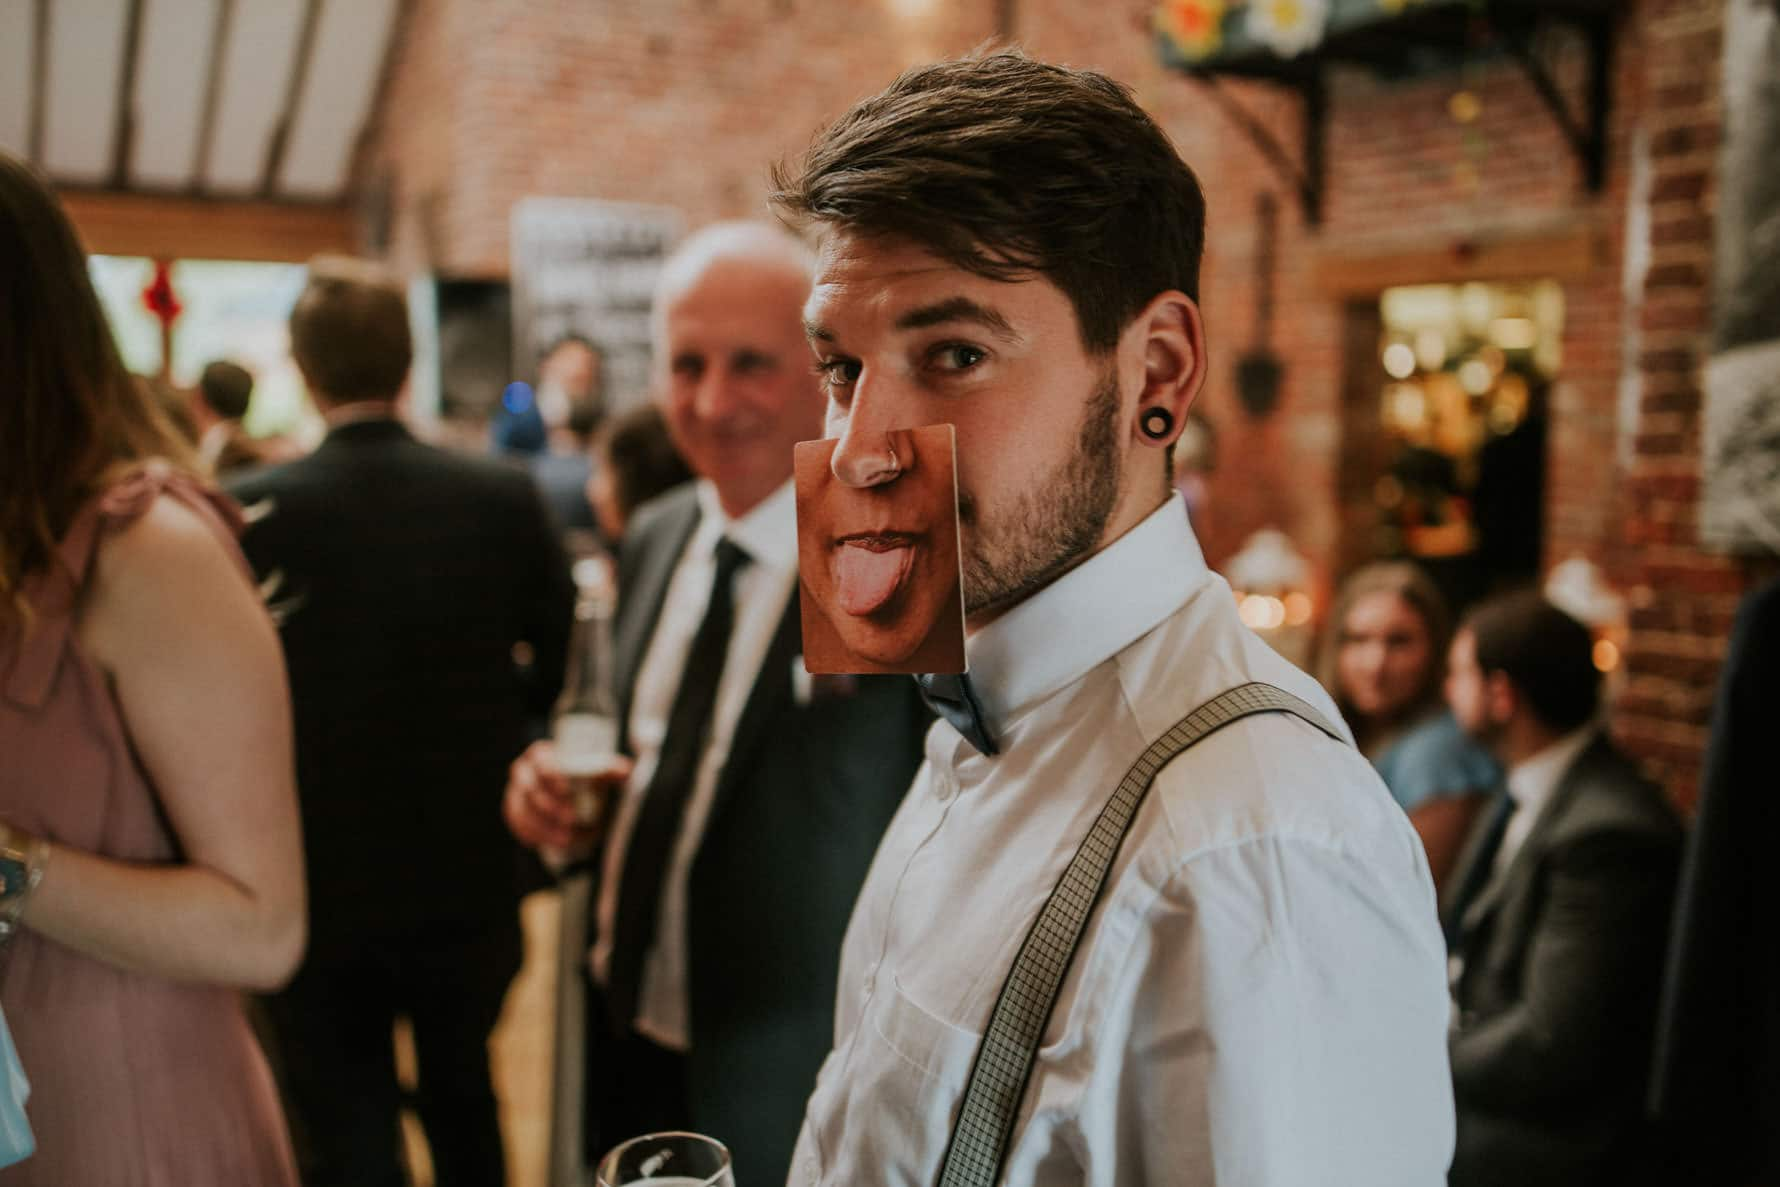 Wedding guest with a fake mouth on